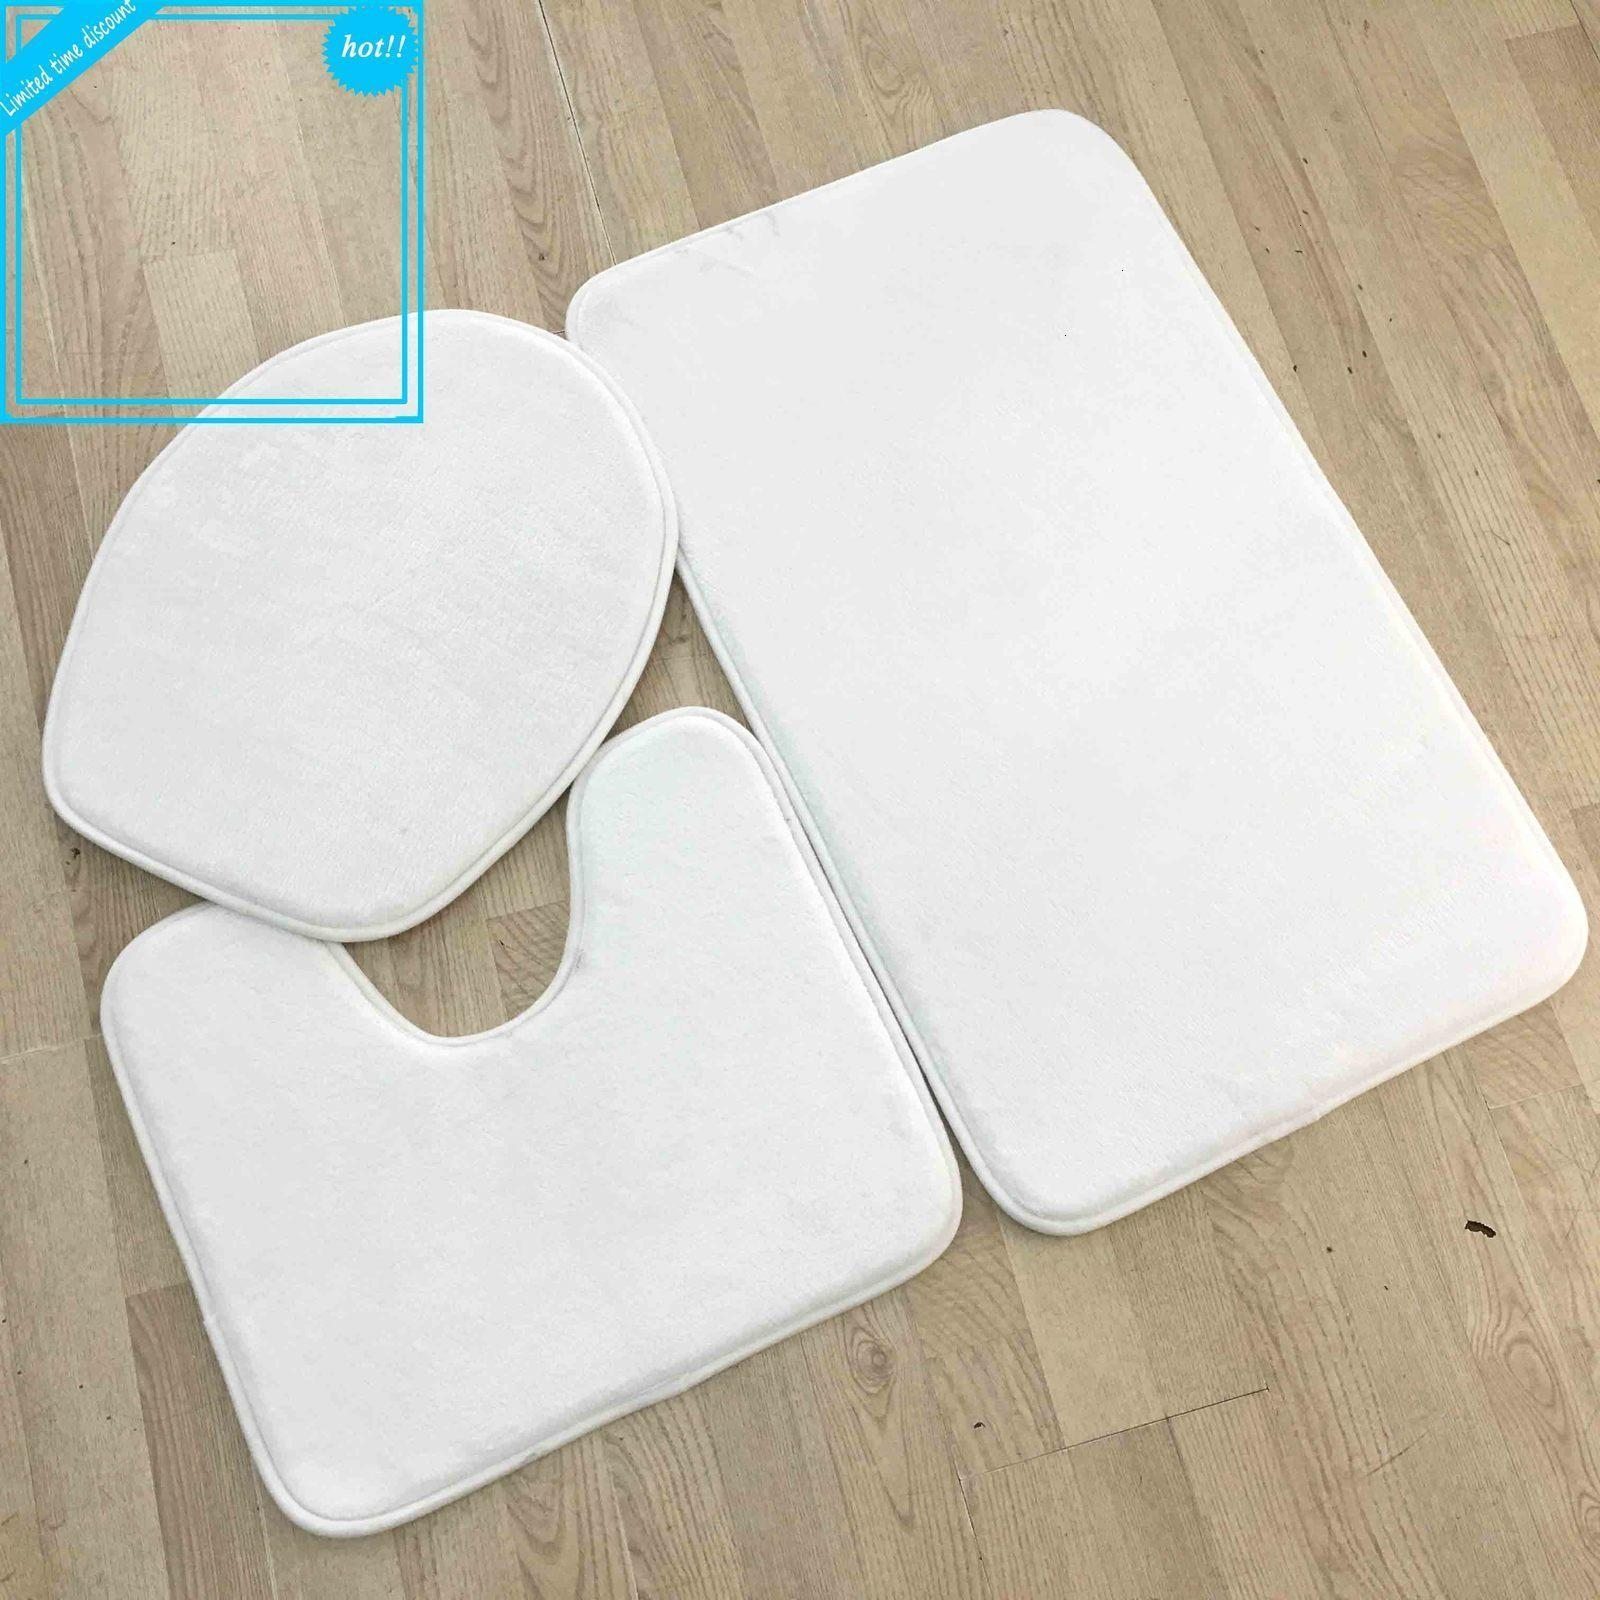 Printable Wholesale White Plain Blank Shower Bathroom Bath Mats for Dye Sublimation Heat Transfer Digital Printing